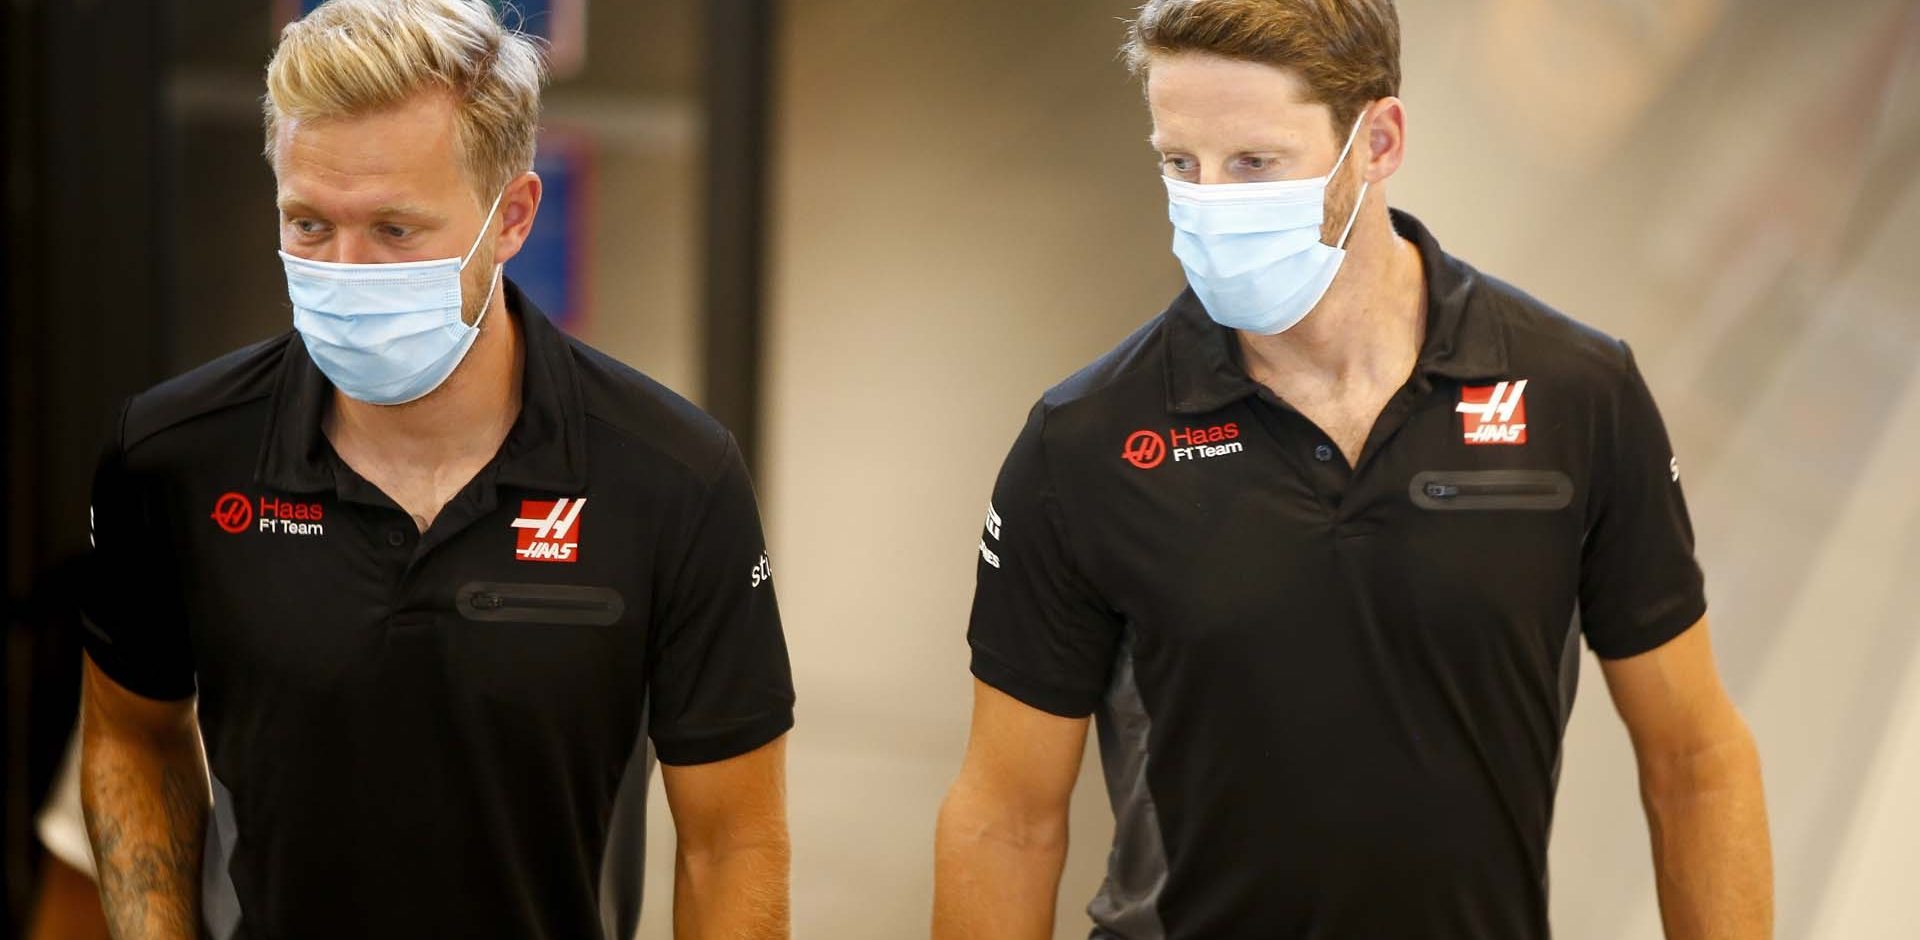 JULY 09: Kevin Magnussen, Haas F1 and Romain Grosjean, Haas F1 during the Styrian GP on Thursday July 09, 2020. (Photo by Andy Hone / LAT Images)